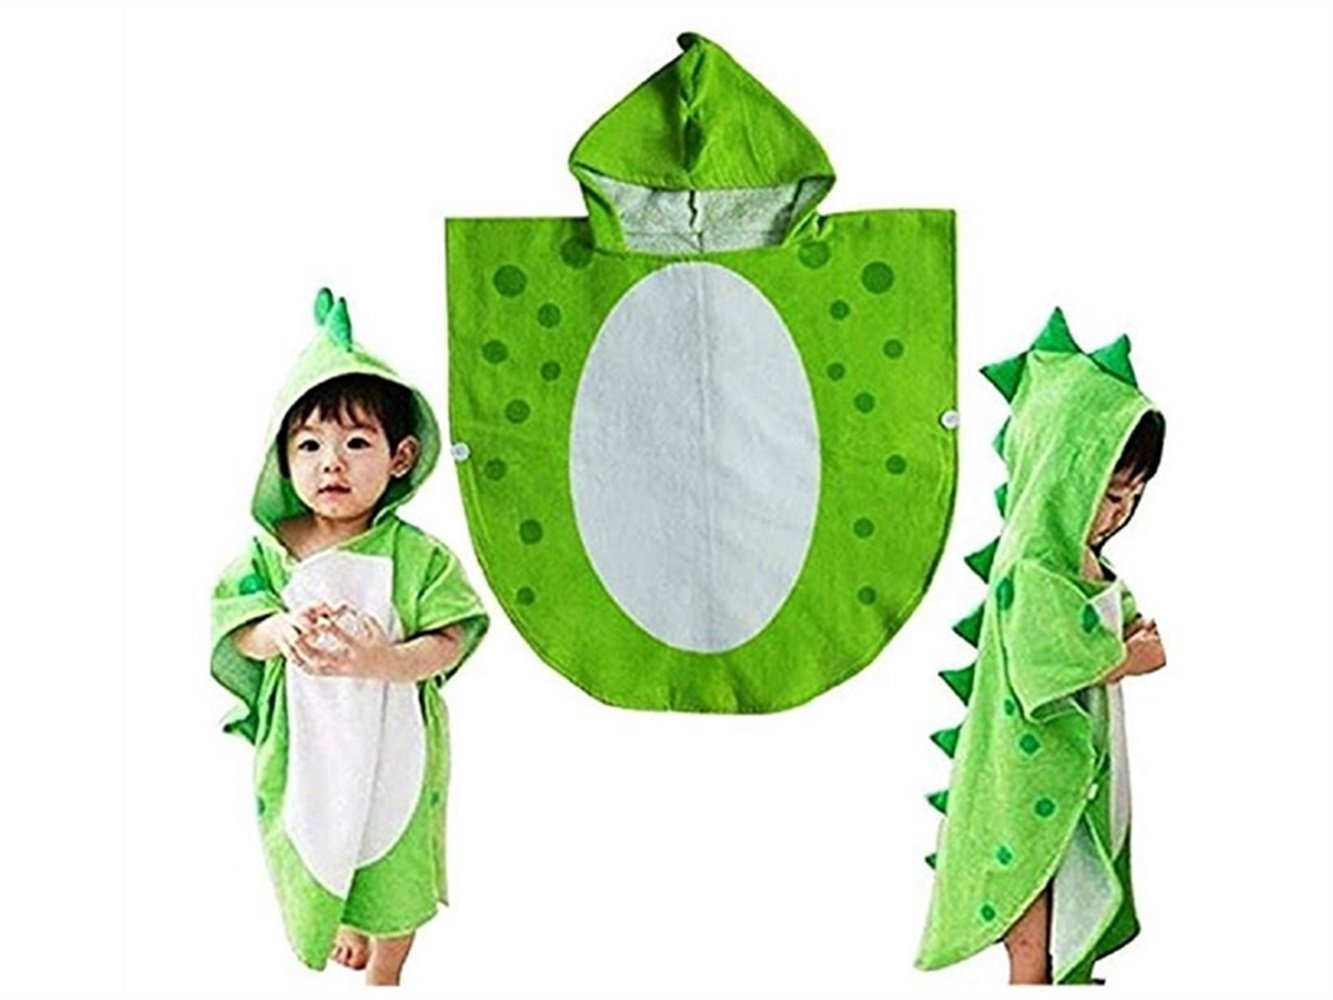 Wesource Activates Children Dinosaur Cartoon Animal Pattern Hooded Robe Bath Towel -Size Approx 55x115cm(Green)